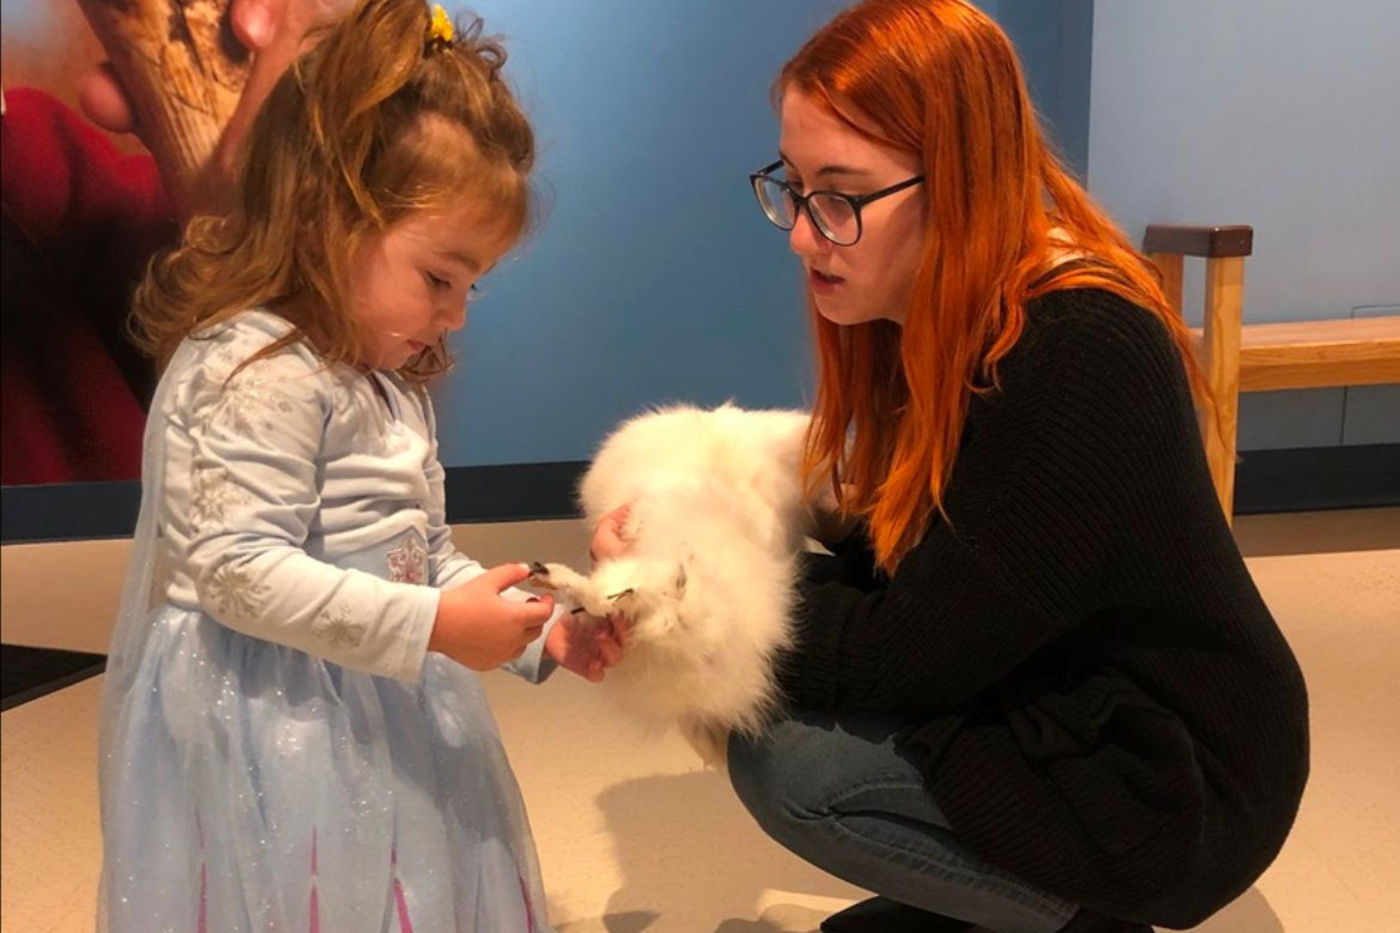 An educator holds an animal pelt up to a young visitor to touch. The visitor wears a blue costume dress and holds the end of the pelt for closer inspection.